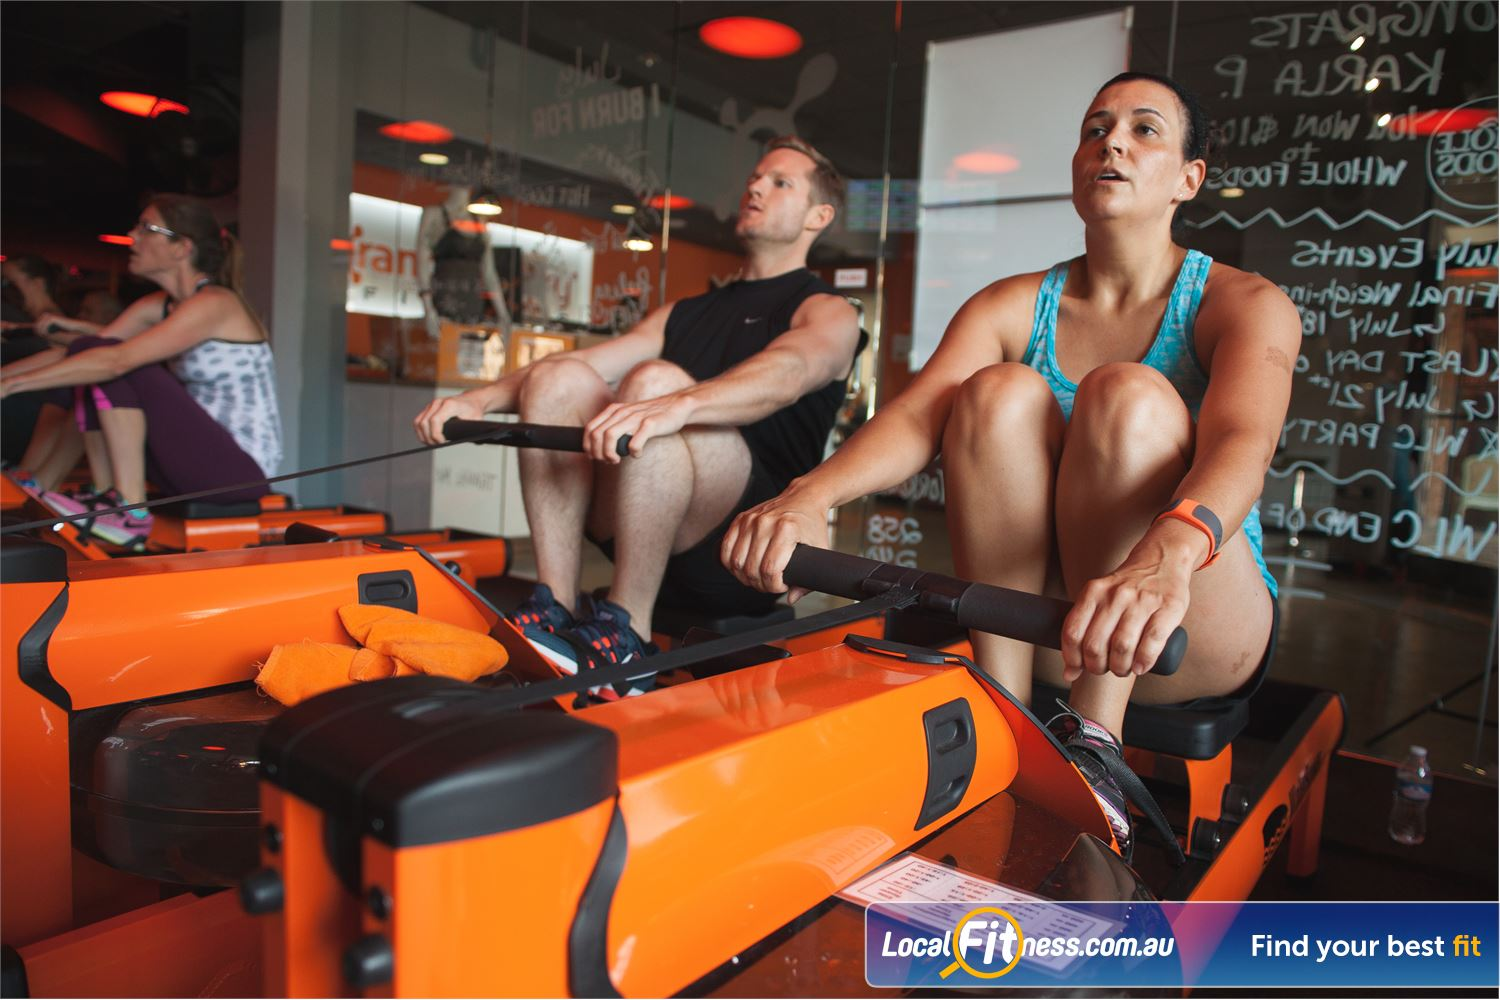 Orangetheory Fitness Hawthorn Orangetheory Hawthorn is a one-of-a-kind, group personal training workout.